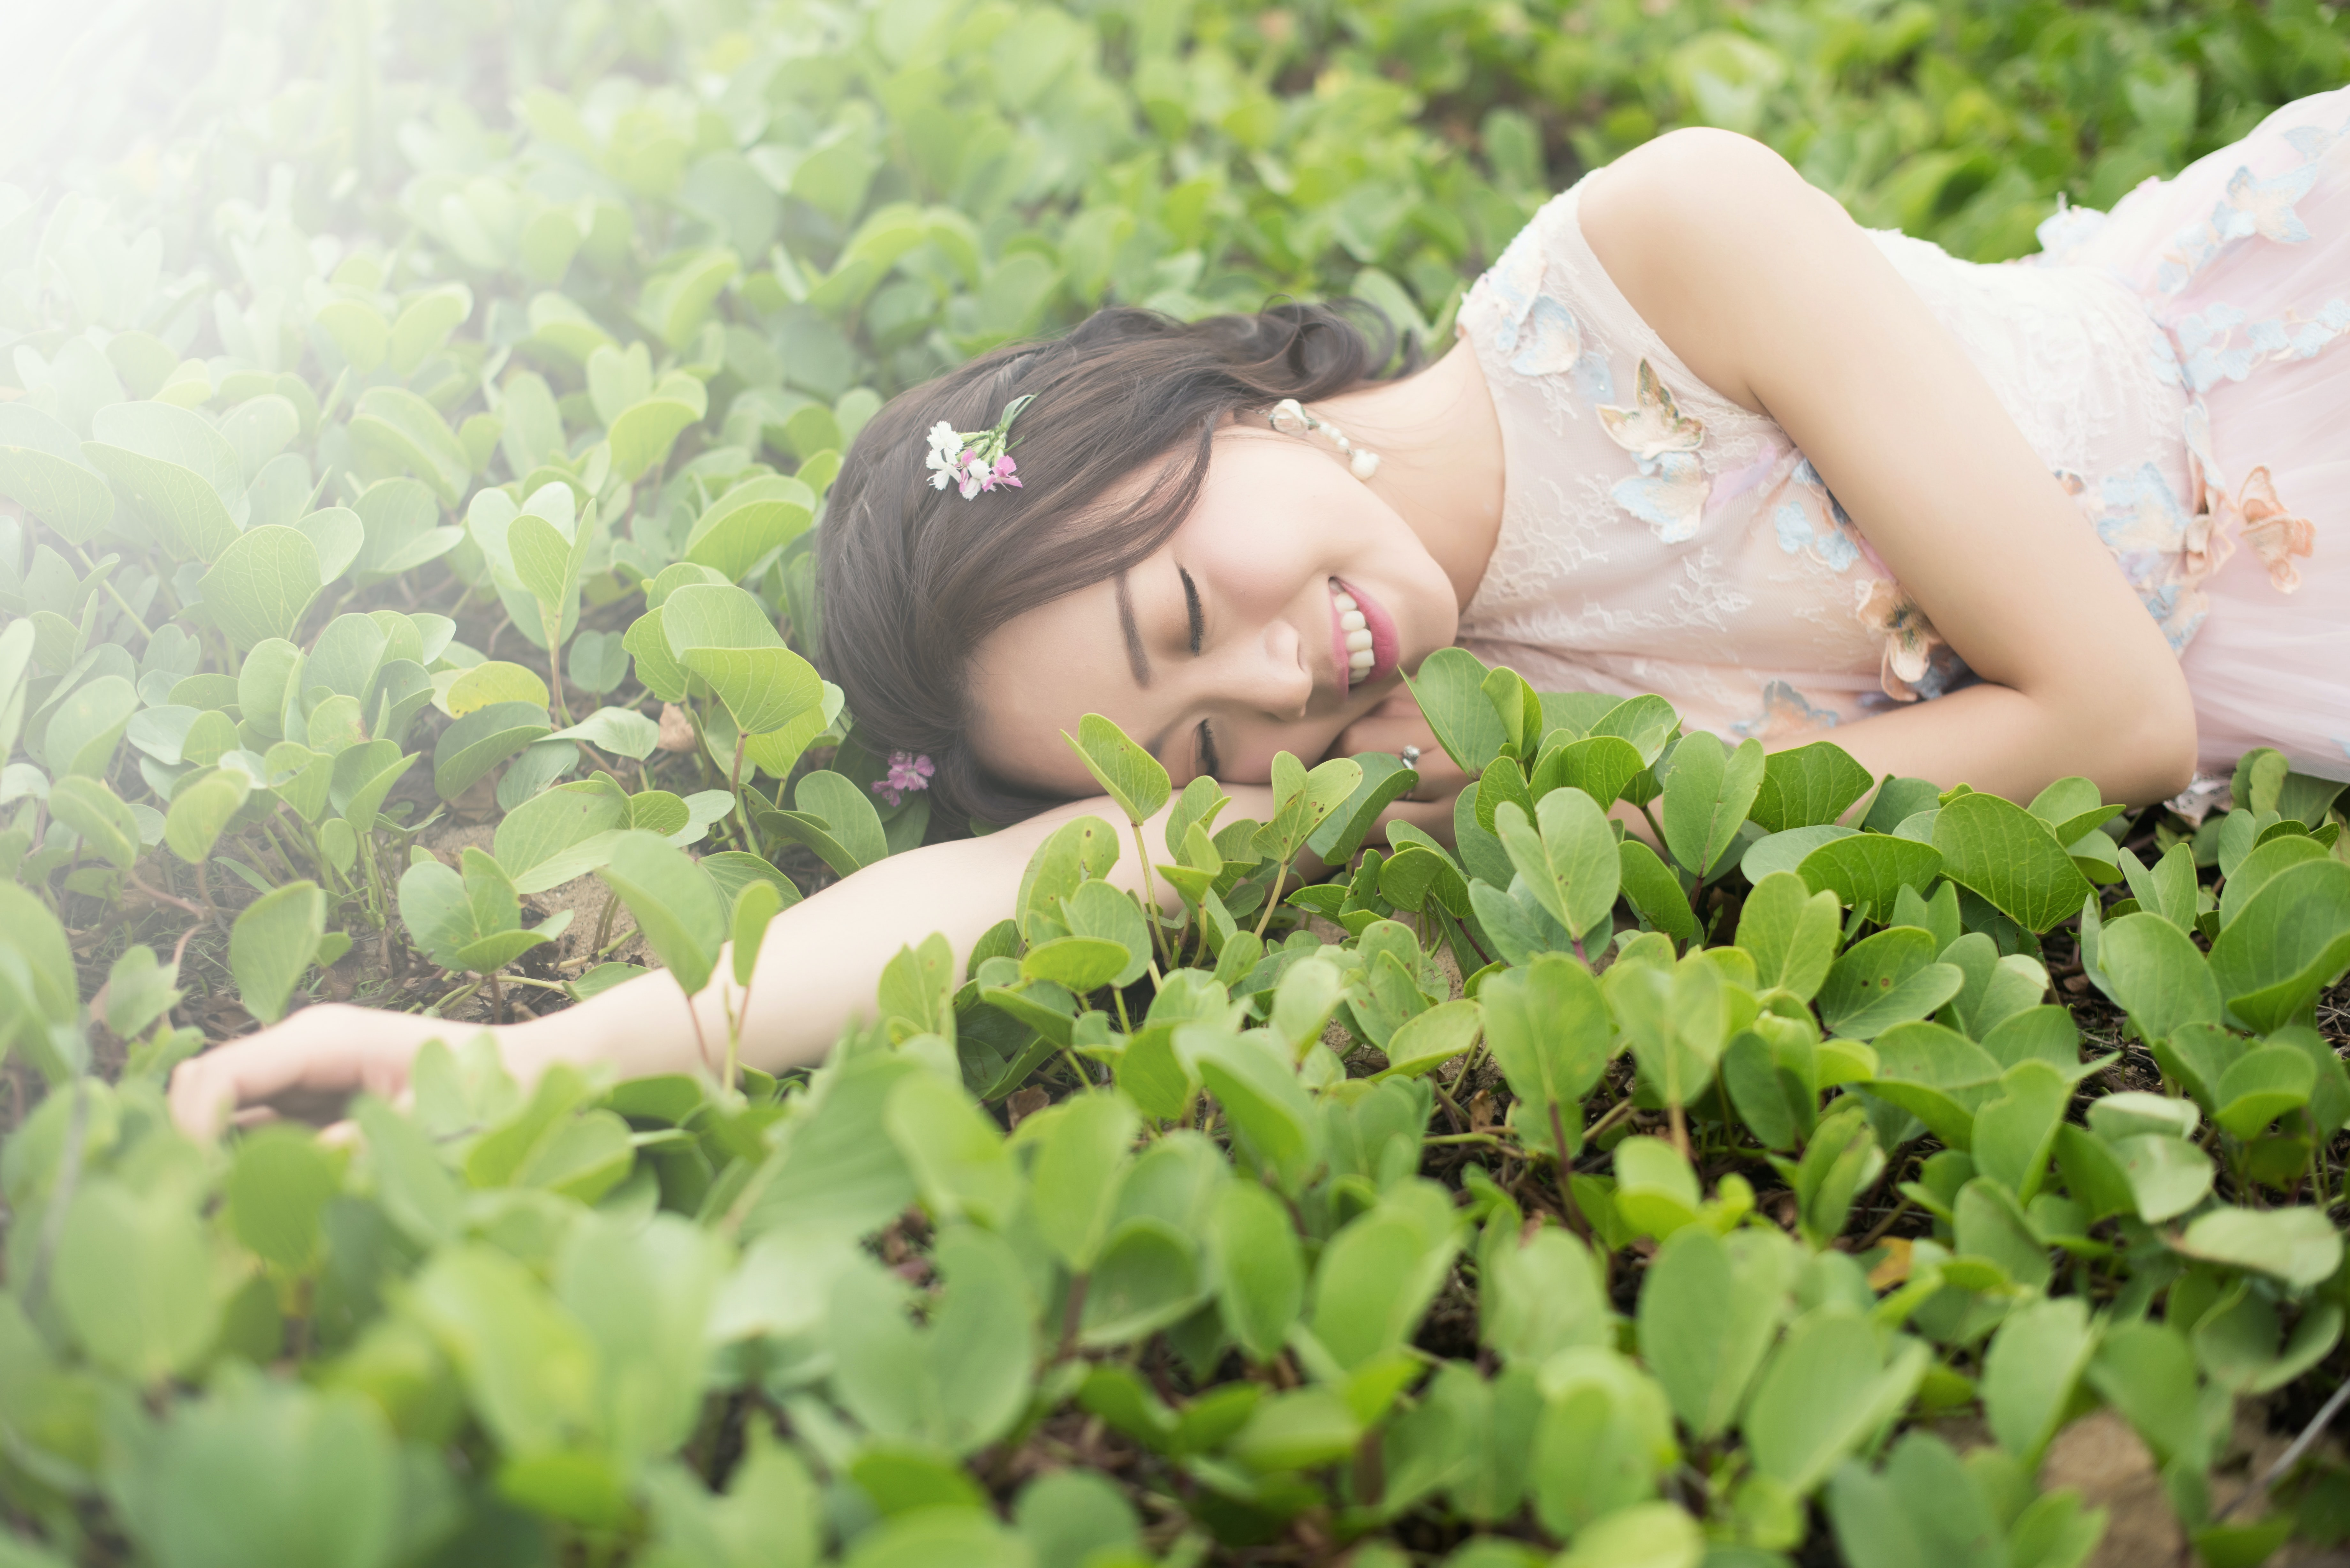 An Asian woman lying down in the grass smiling in a pretty pink dress